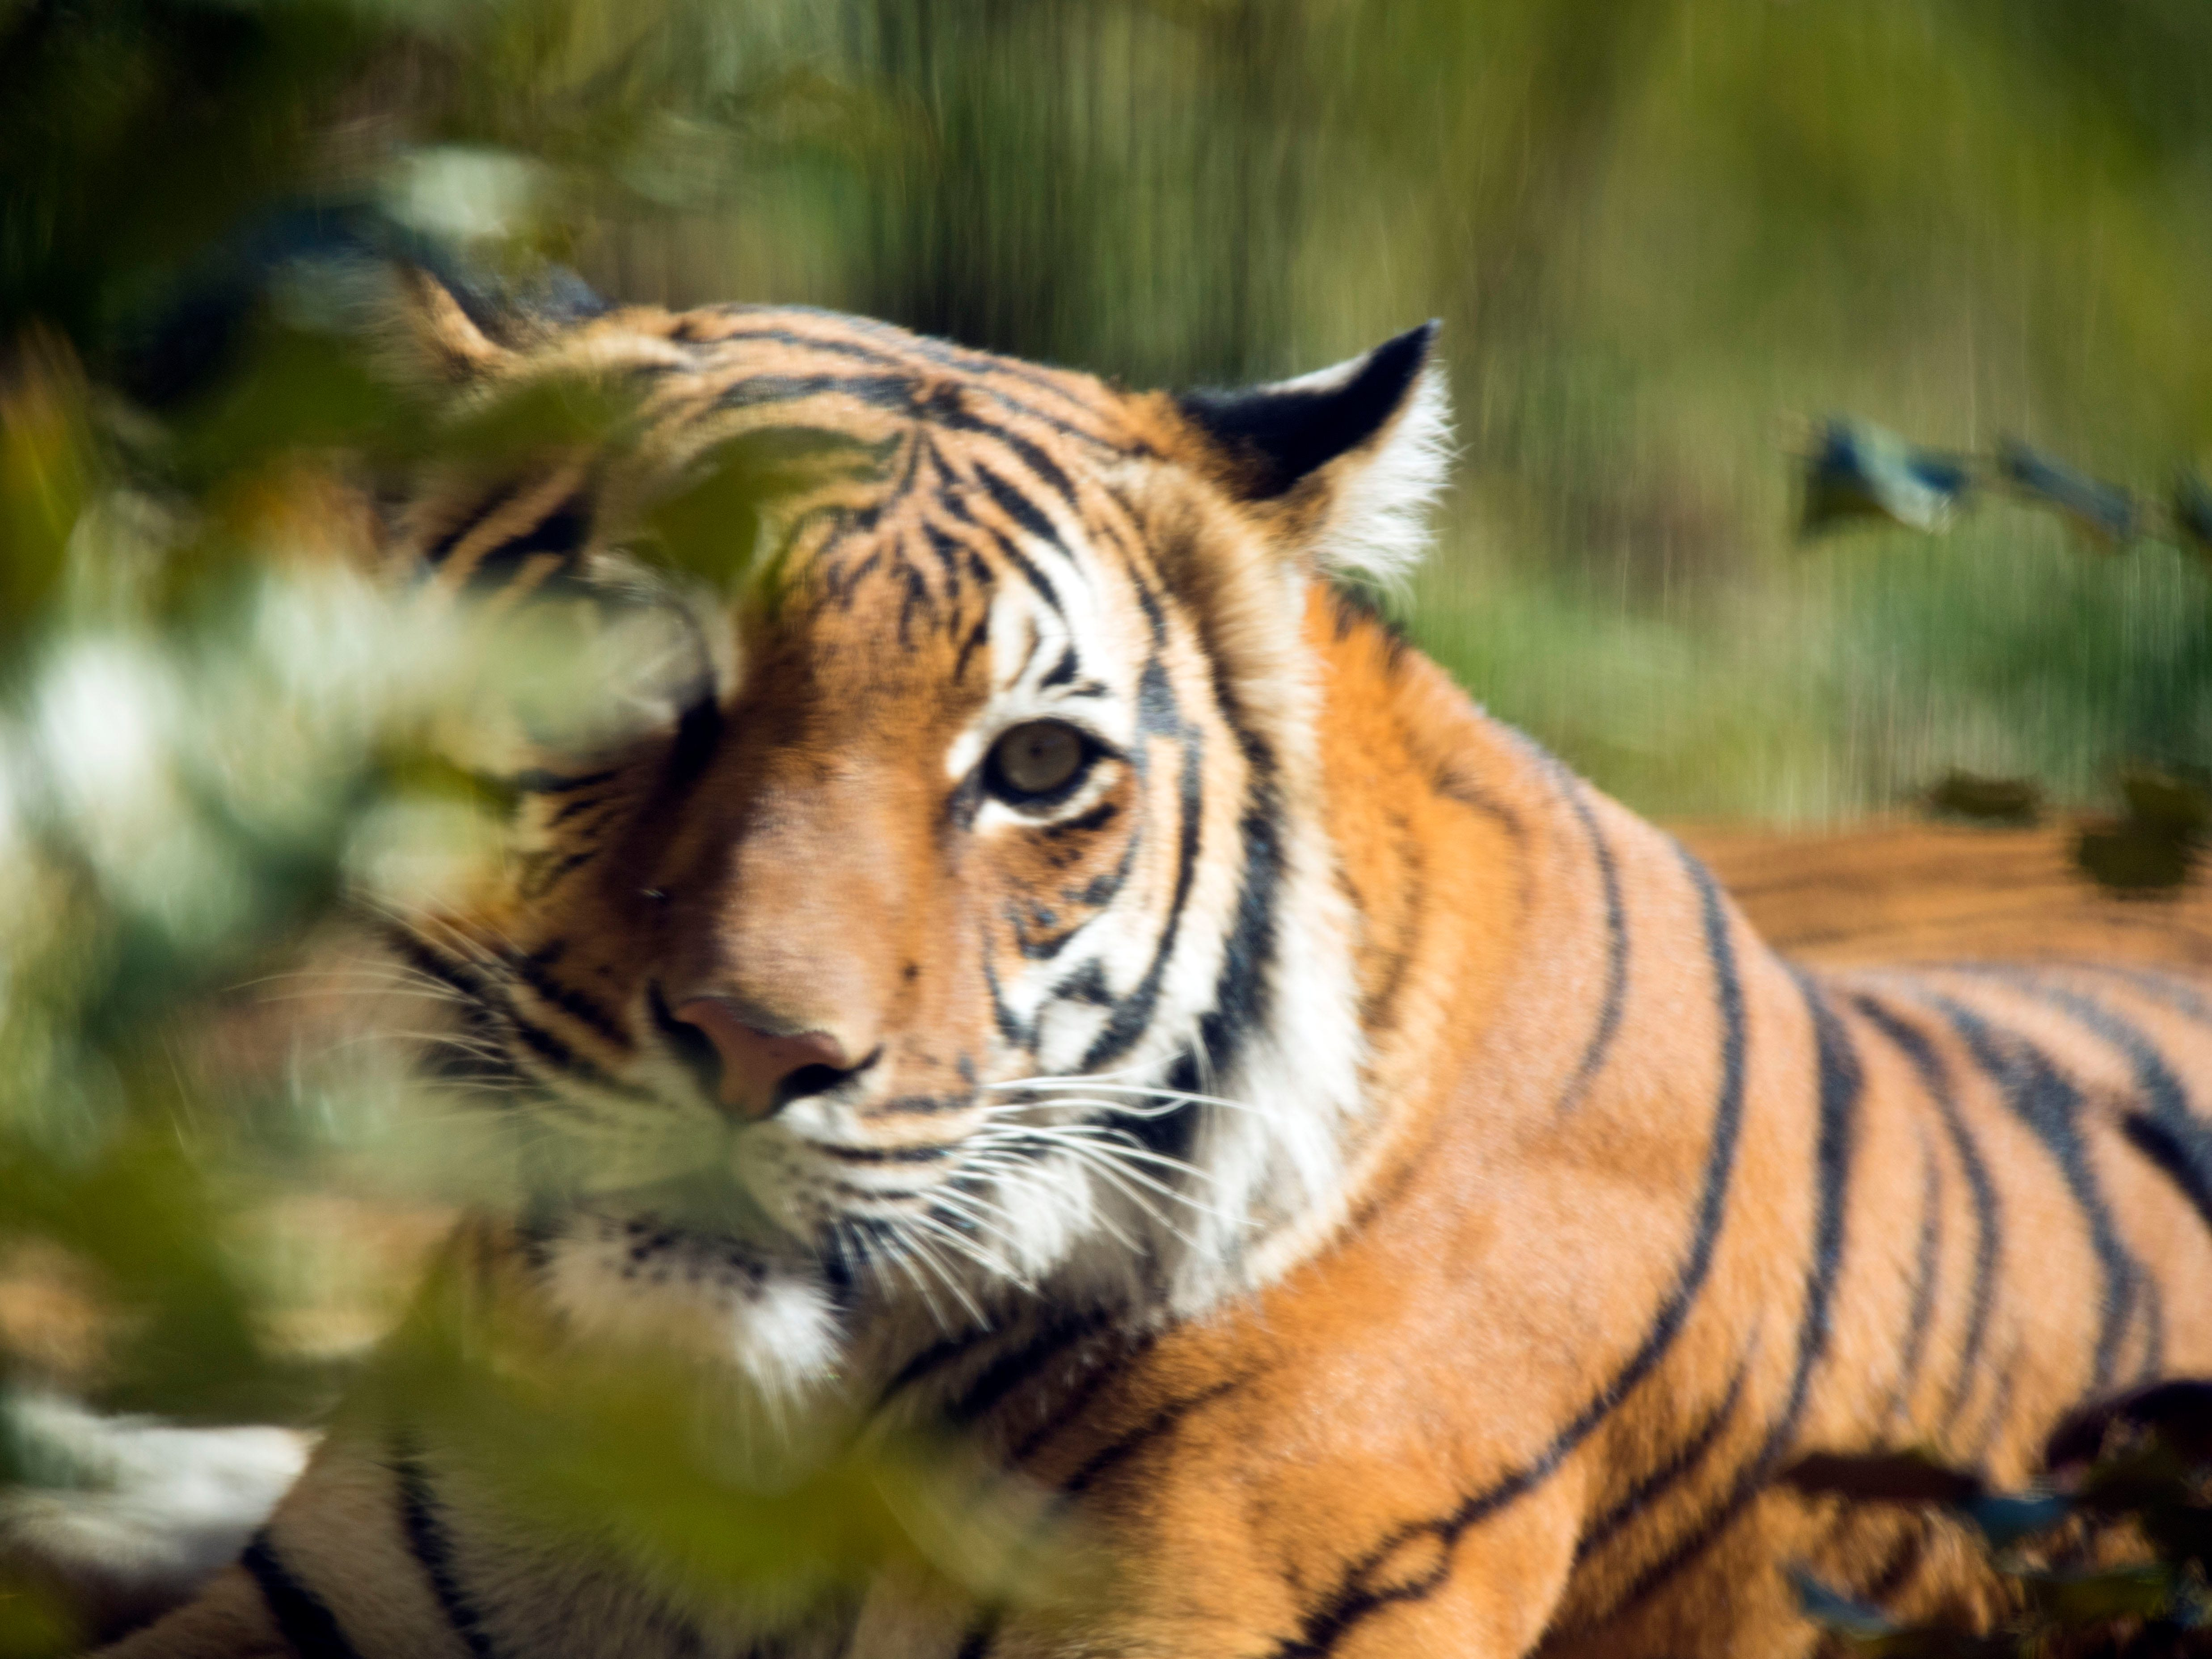 Arya, a Malayan Tiger, hides in the shrubbery at Zoo Knoxville's Tiger Forest habitat on Sunday, February 3, 2019.